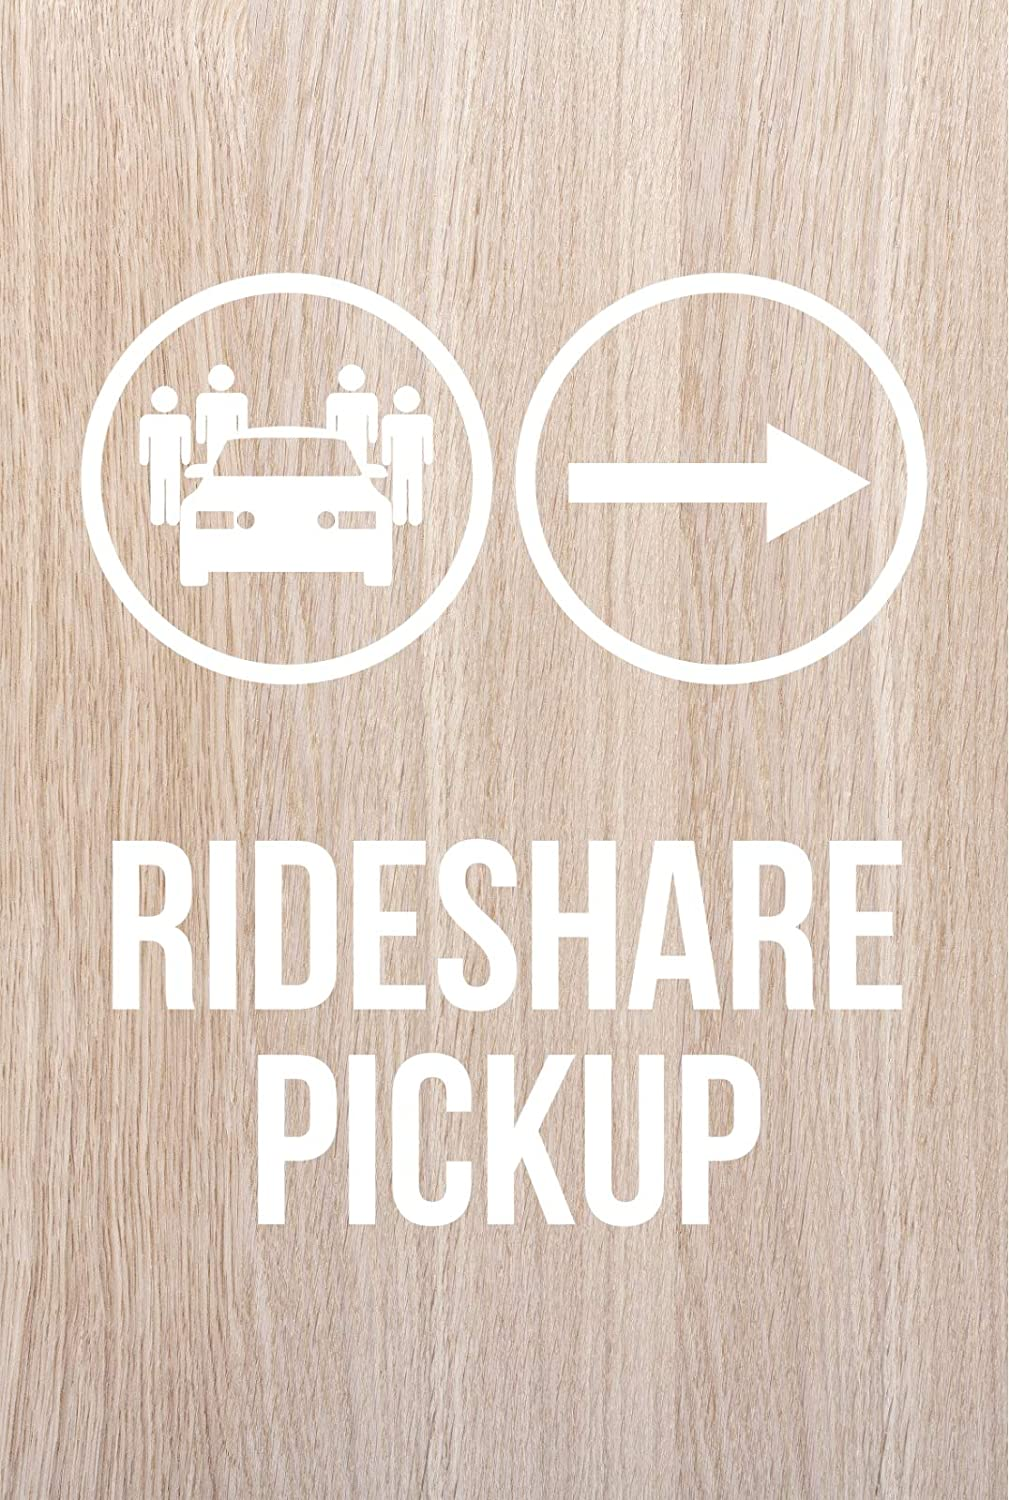 Dark Wood Plastic iCandy Products Inc Rideshare Pickup Rightwards Arrow Hotel Business Office Building Sign 12x18 Inches